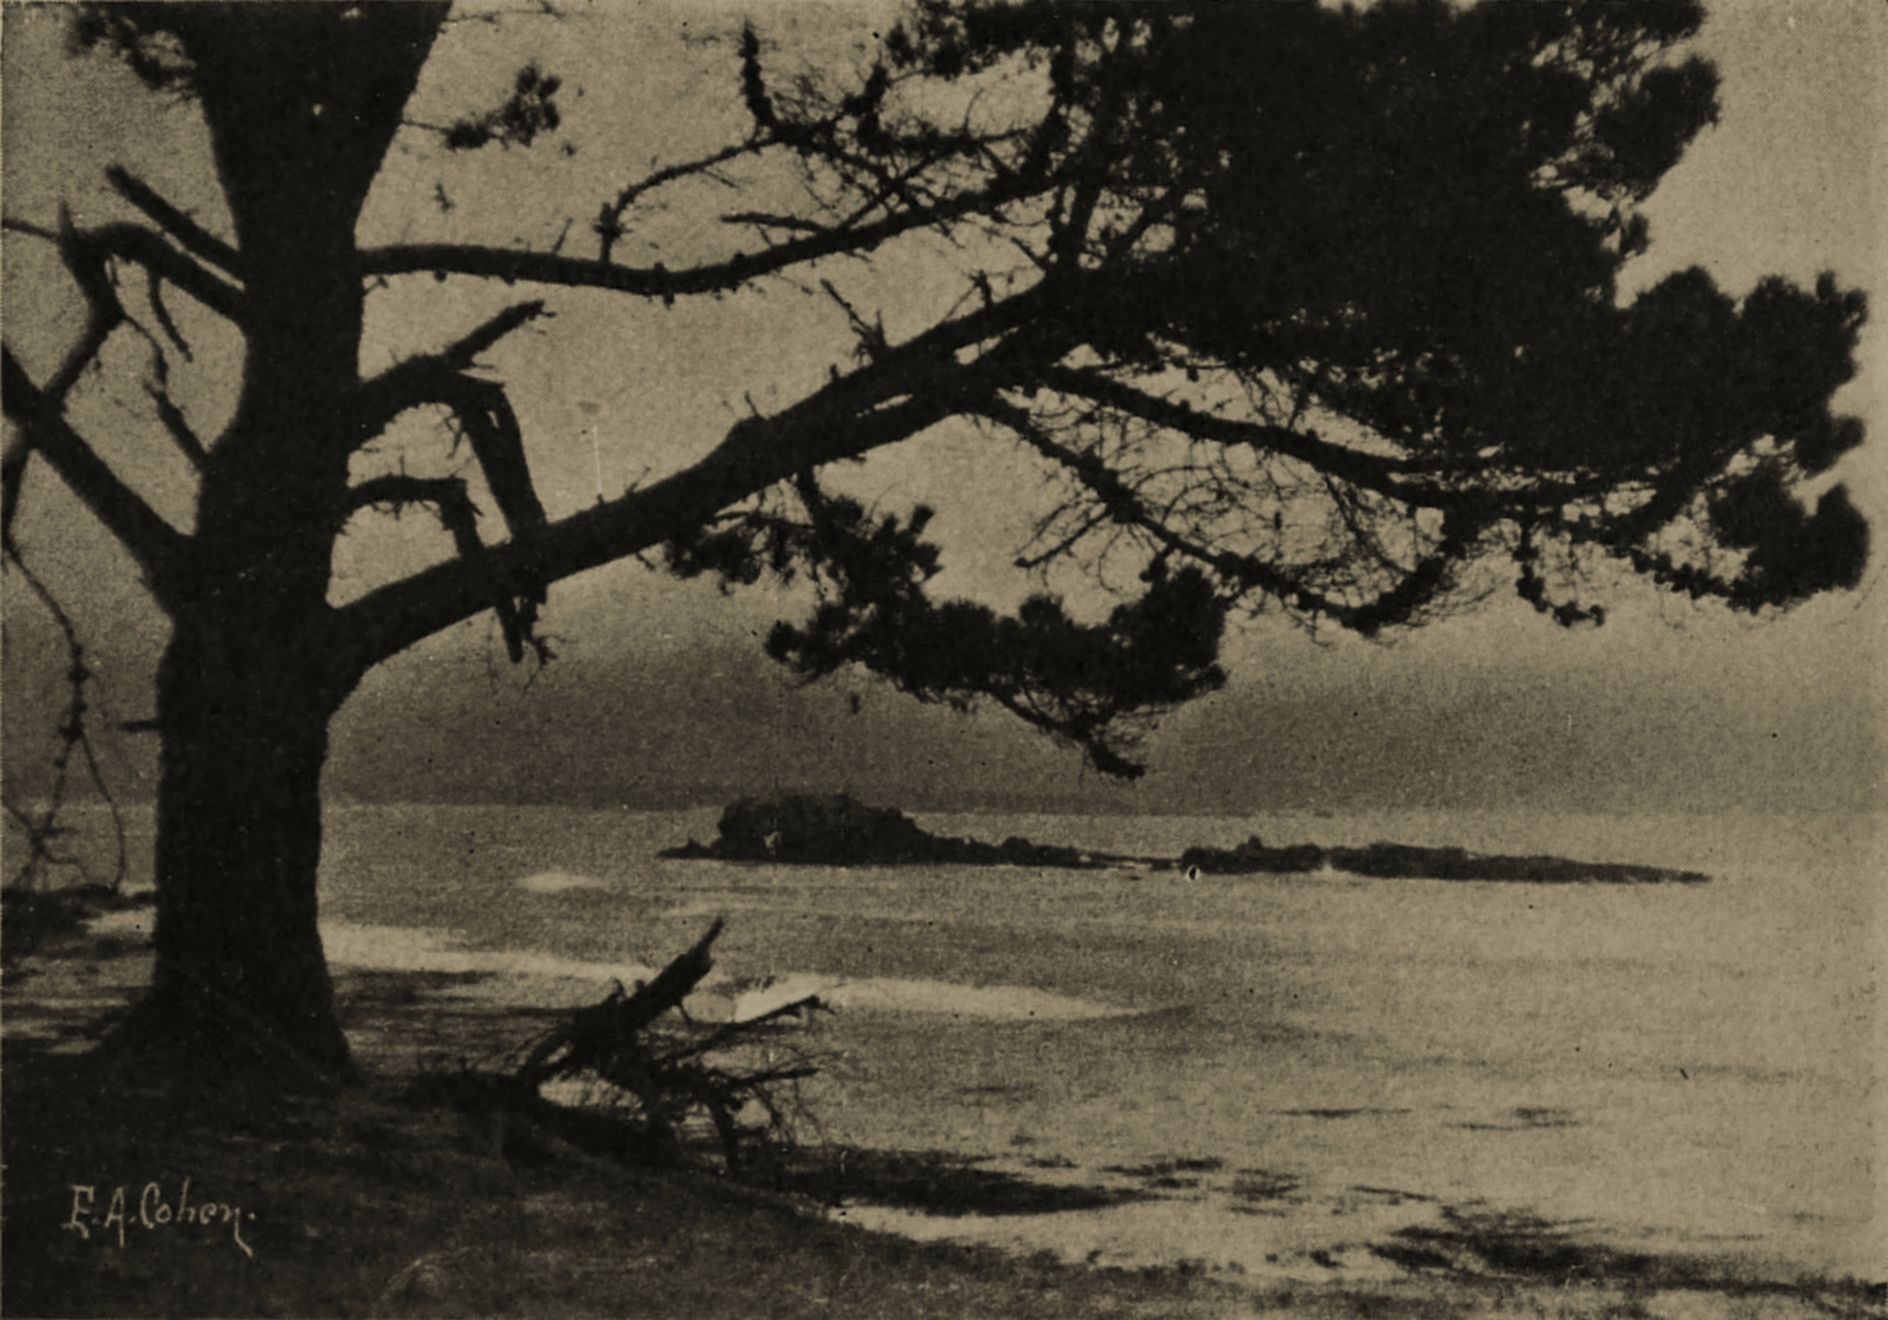 Arch Rock from Pebble Beach by Edgar A. Cohen about 1908